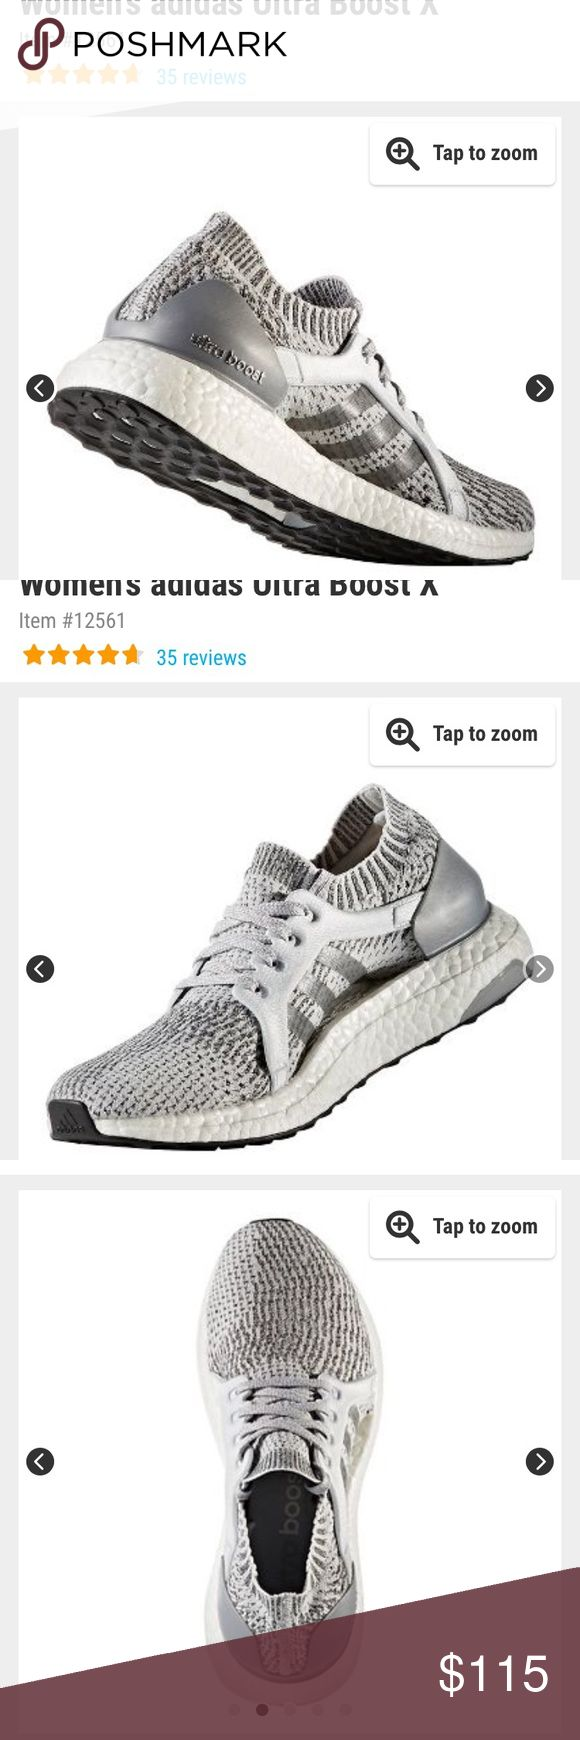 Adidas Ultra Boost X, grey and size 8 Adidas Ultra Boost X, grey and size 8  These are true to size and so comfortable! They've only been worn a handful of times. I thought I'd wear them for running but I don't run.. adidas Shoes Athletic Shoes